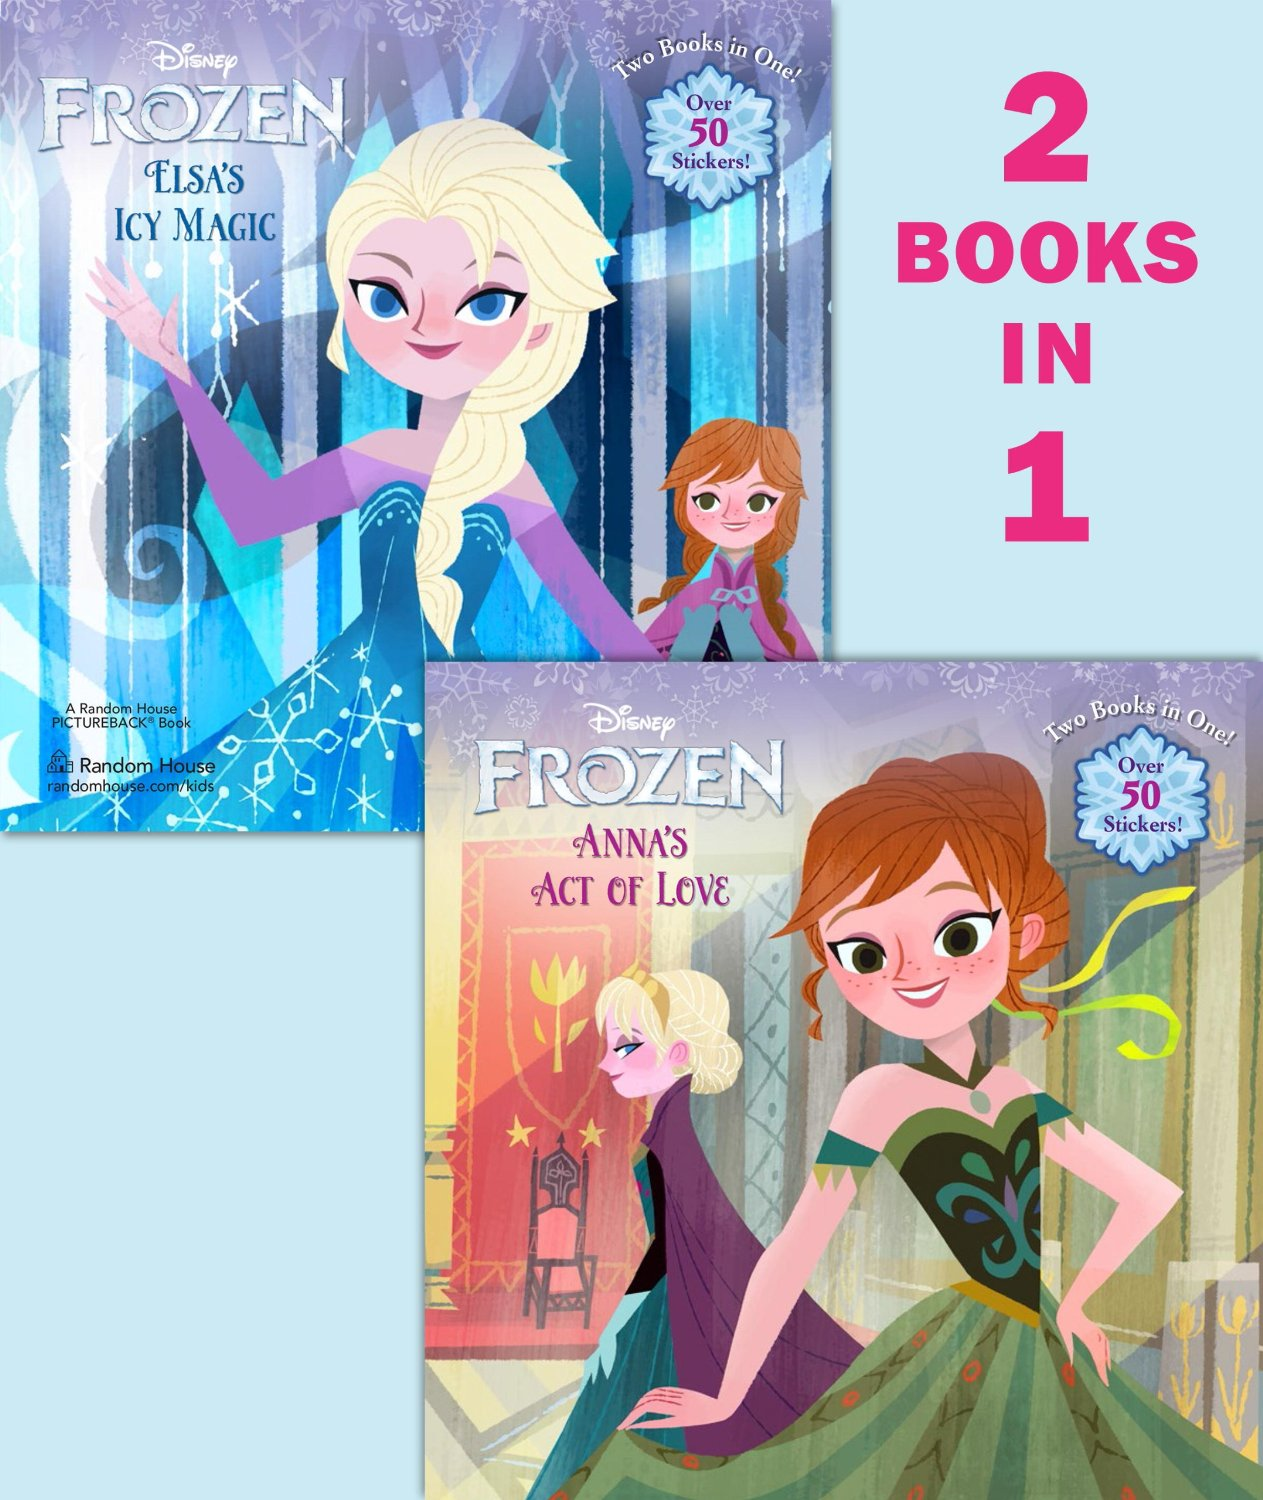 Frozen coloring pages fanpop - Upcoming Frozen Books Elsa And Anna Photo 38160949 Fanpop 357x500 Toddler